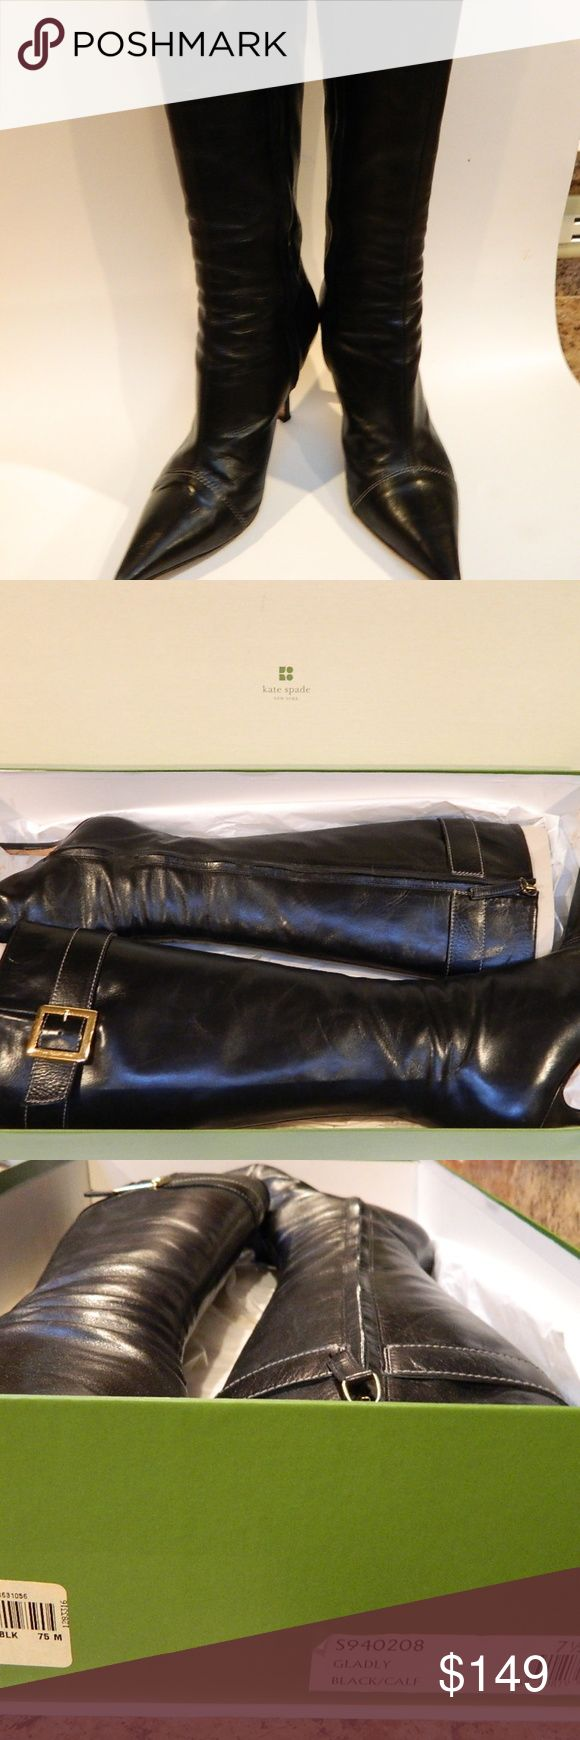 """KATE SPADE black leather boots 7.5 Gladly buckle Gorgeous black calf Leather - perfectly hugs your leg  Style - """"Gladly""""  Gold Buckle Accent   Side zipper closure             Size 7 1/2          Made in Italy                             Excellent pre-owned condition - worn just a few times - Please see pictures   They look and feel amazing on - incredibly soft leather  Fits a thin, narrow calf - no gap between leg and boot  Includes original box & packaging       Original Retail Price - $575…"""